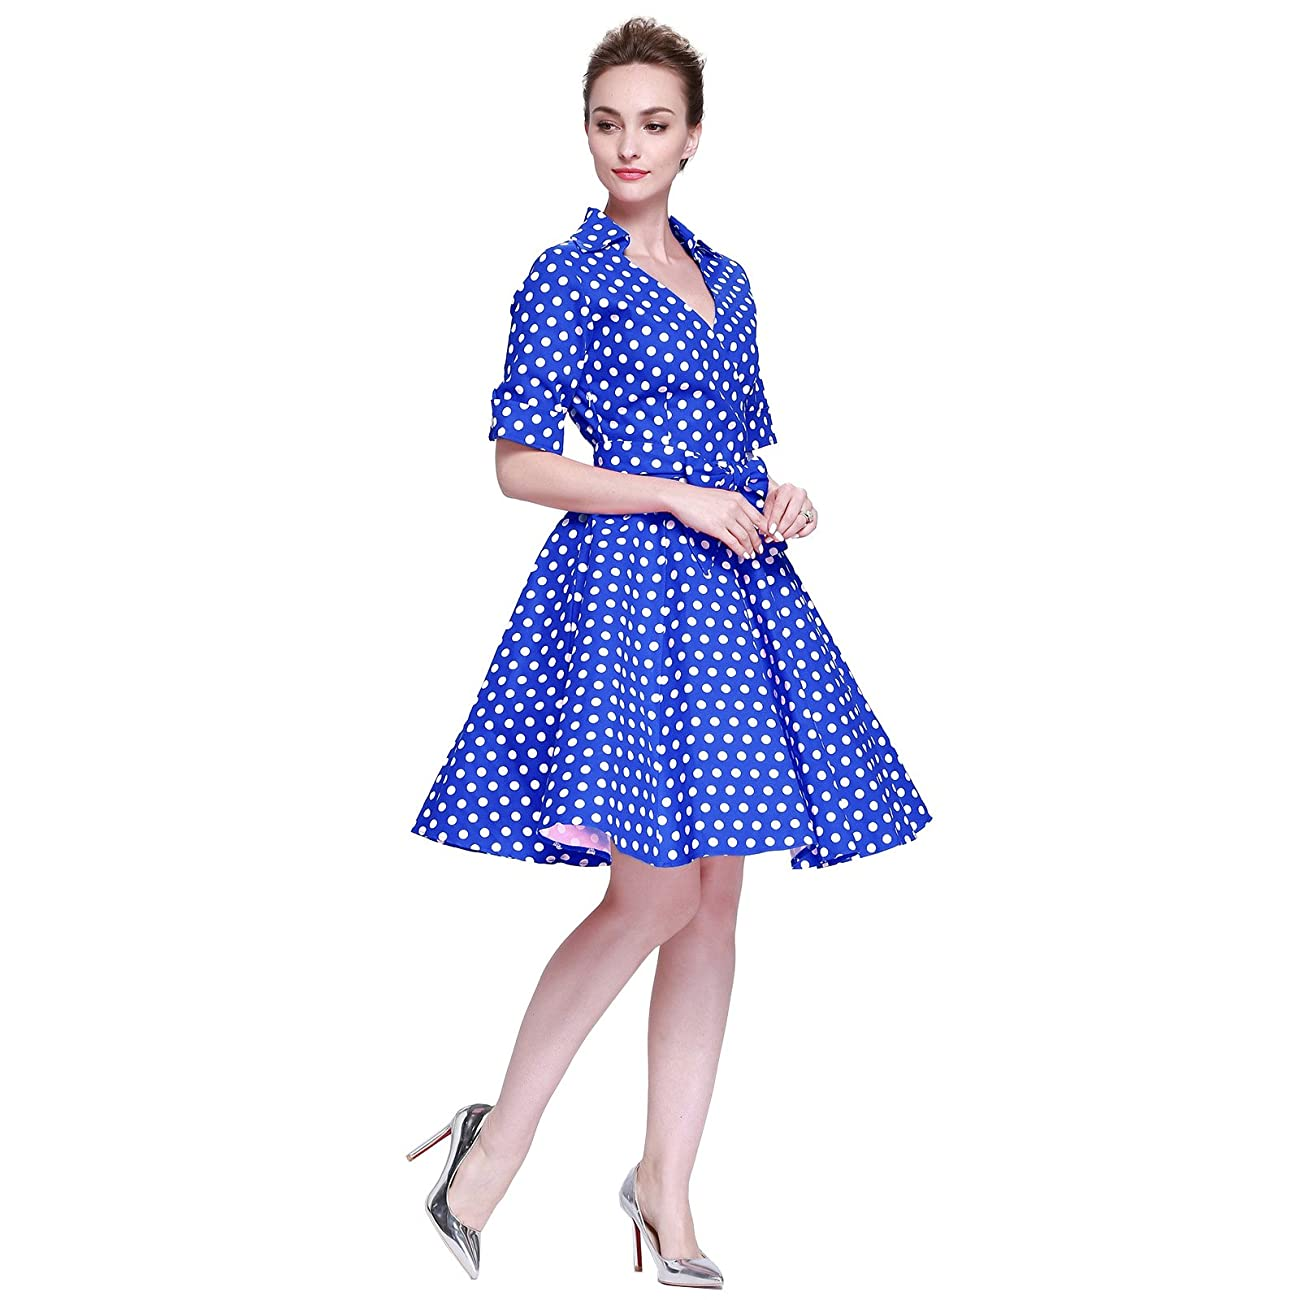 Heroecol Womens Vintage 1950s Dresses Cross V Neck Short Sleeve 50s 60s Style Retro Swing Cotton Dress 2